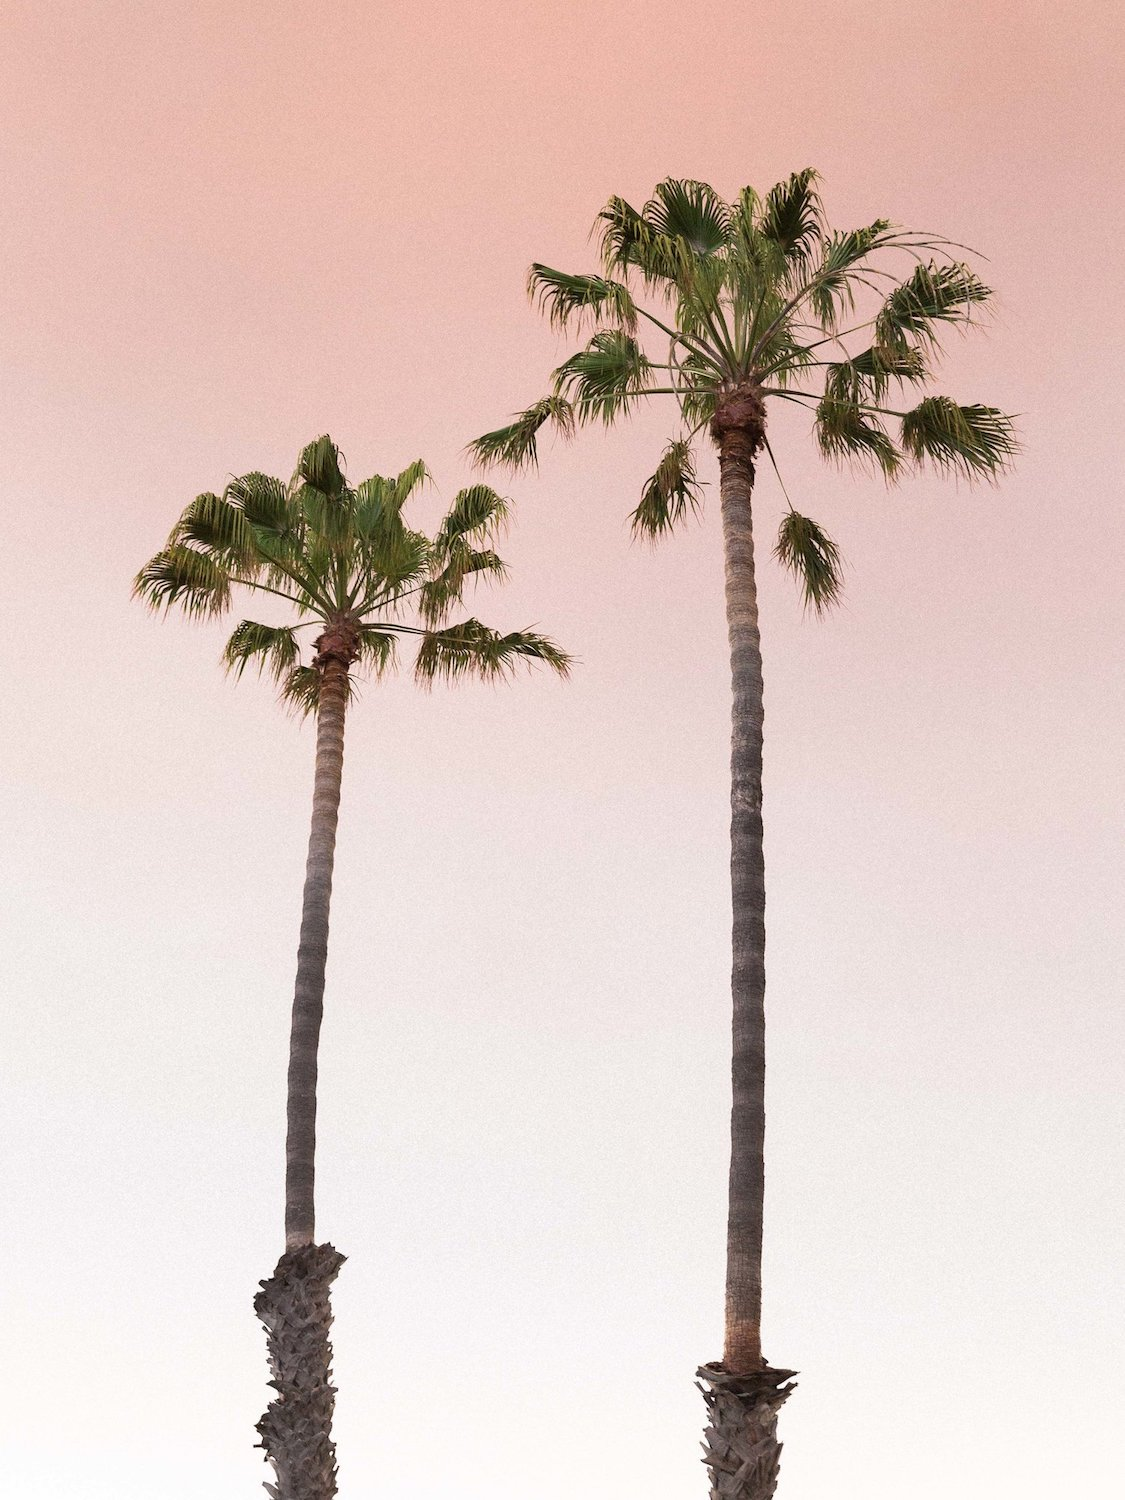 OCEAN LIGHT - Palm trees and pastel ocean light landscape photography